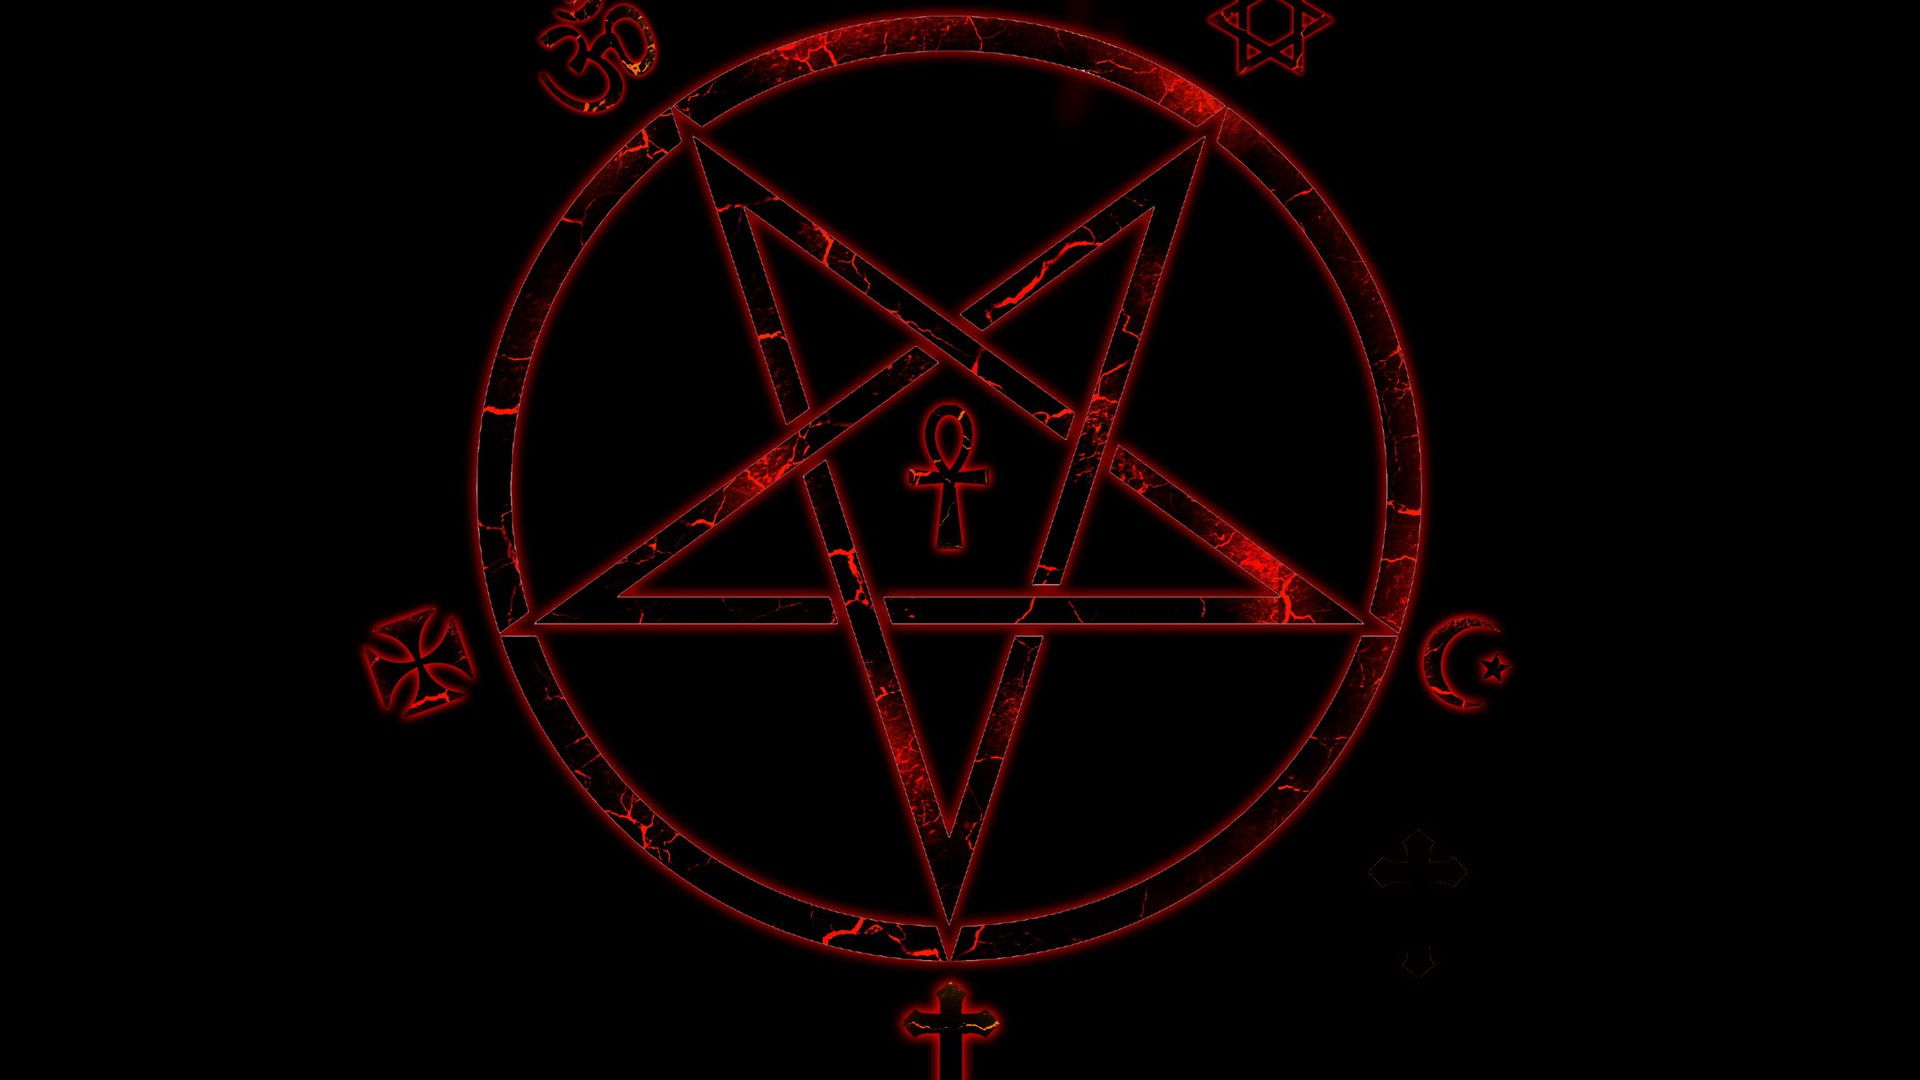 Pentagram wallpaper | AllWallpaper.in #8628 | PC | en